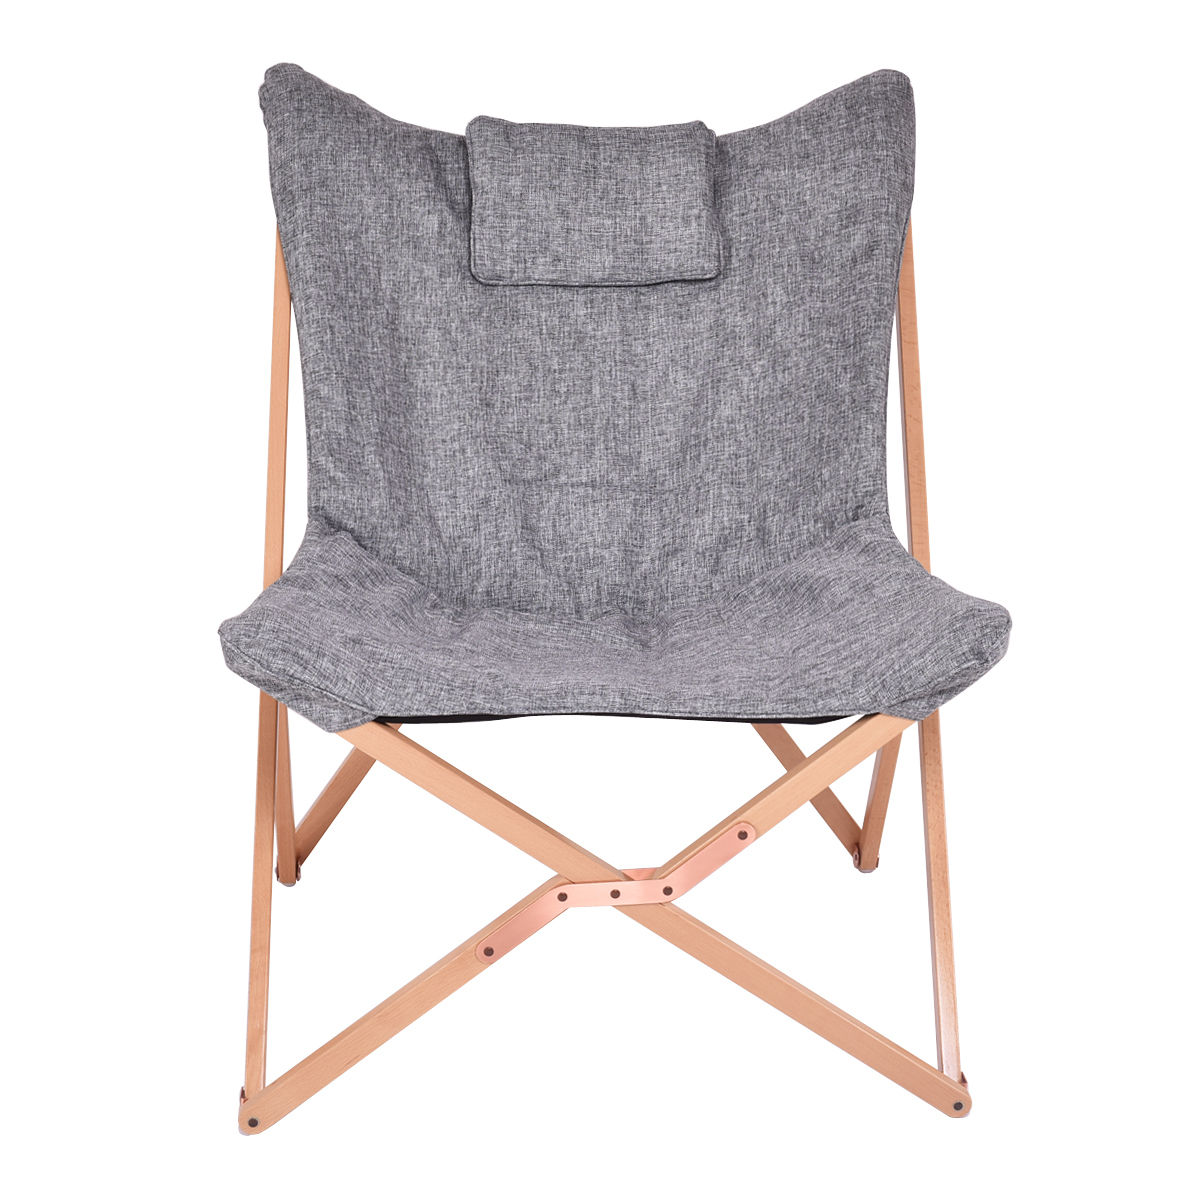 Giantex Home Outdoor Folding Butterfly Chair Seat Wood Frame Gray Portable  Chairs Living Room Furniture HW54442 In Living Room Chairs From Furniture  On ...